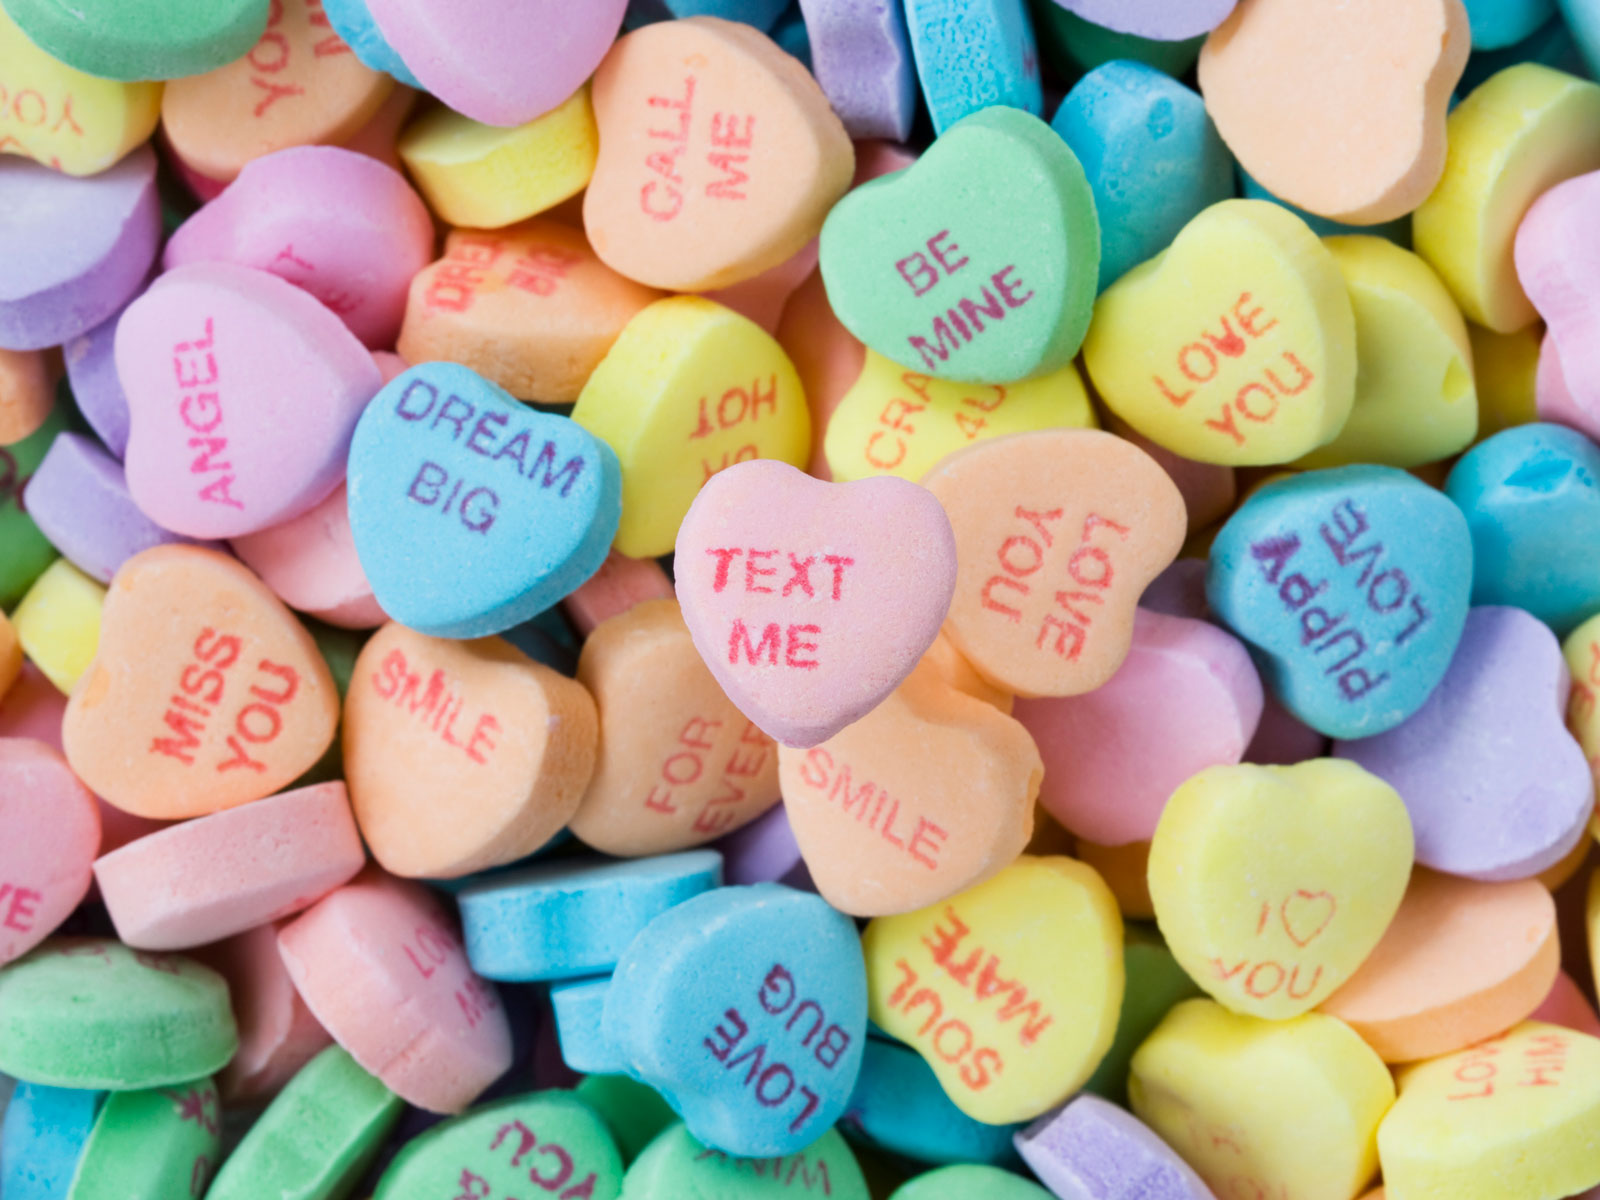 Here's Why You Won't See Sweetheart Conversation Hearts This Valentine's Day